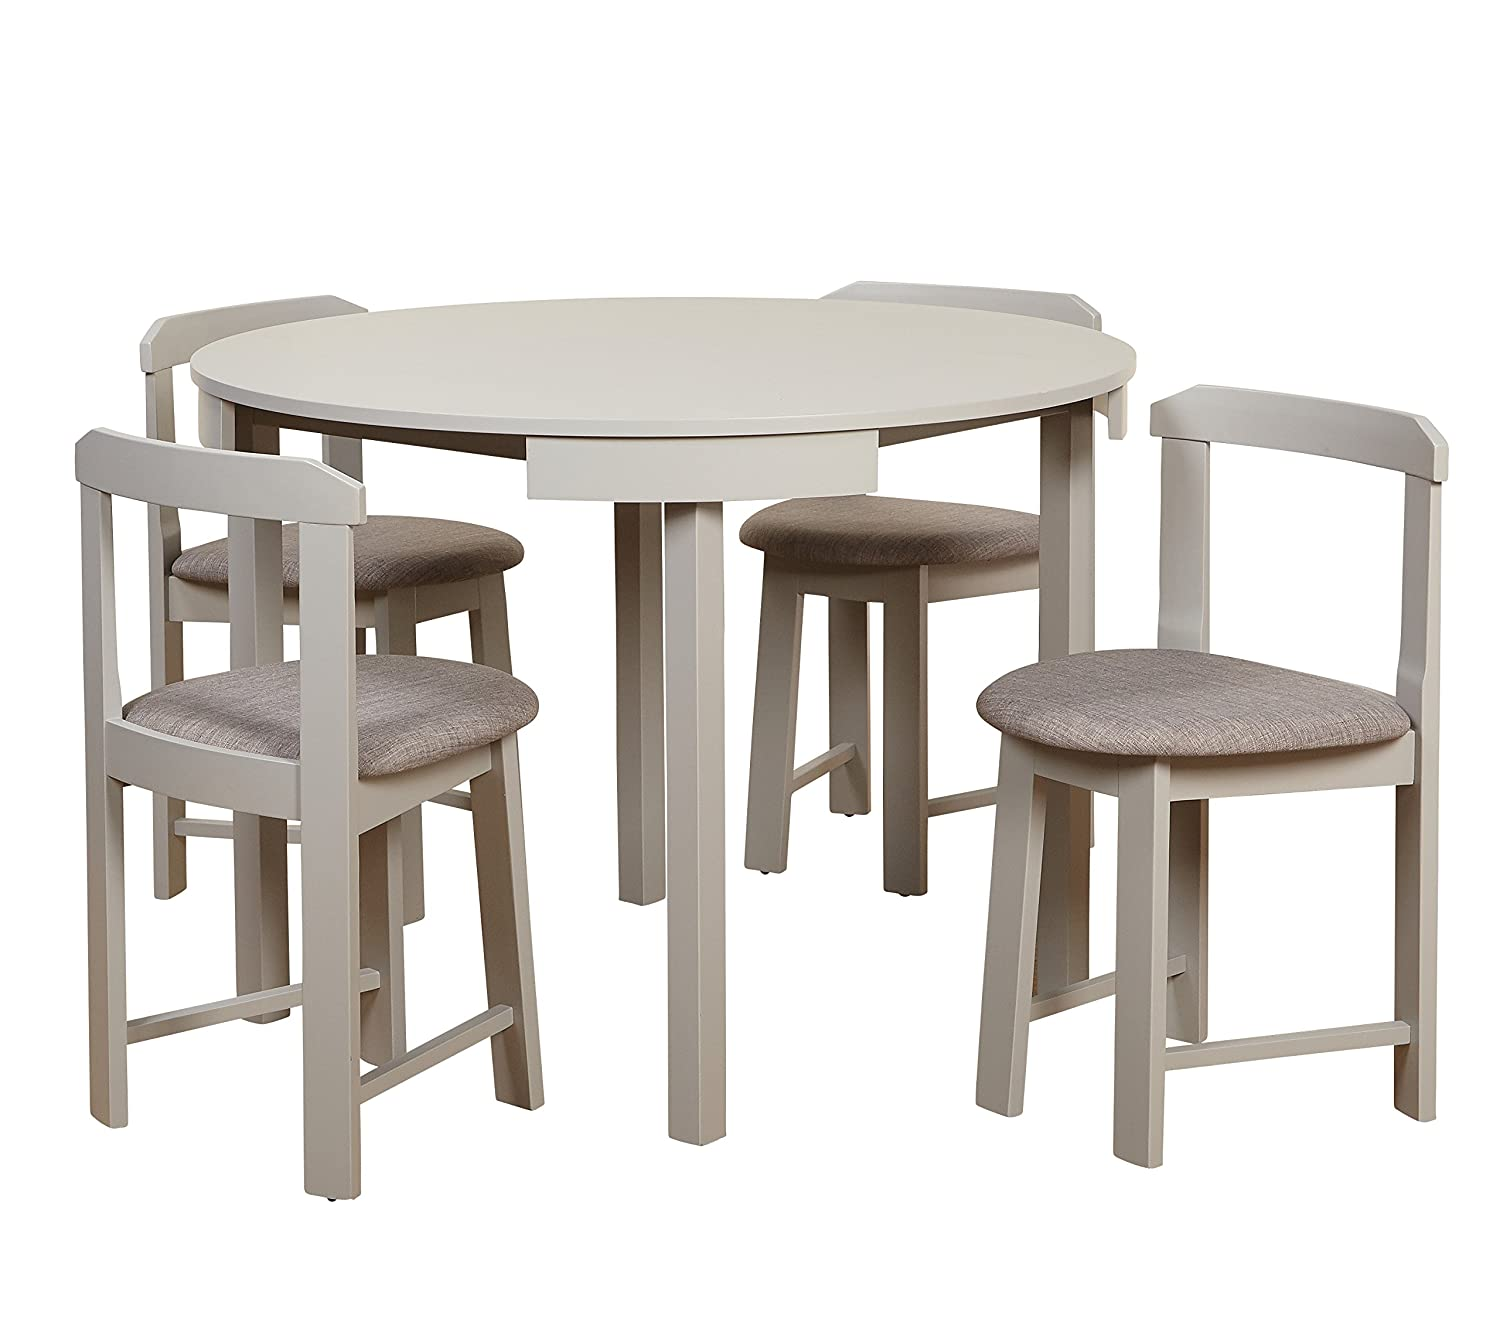 Target Marketing Systems 35515GRY Zuma Collection Compact Set 5-Piece Round Nesting Dining Table & Chairs, Gray